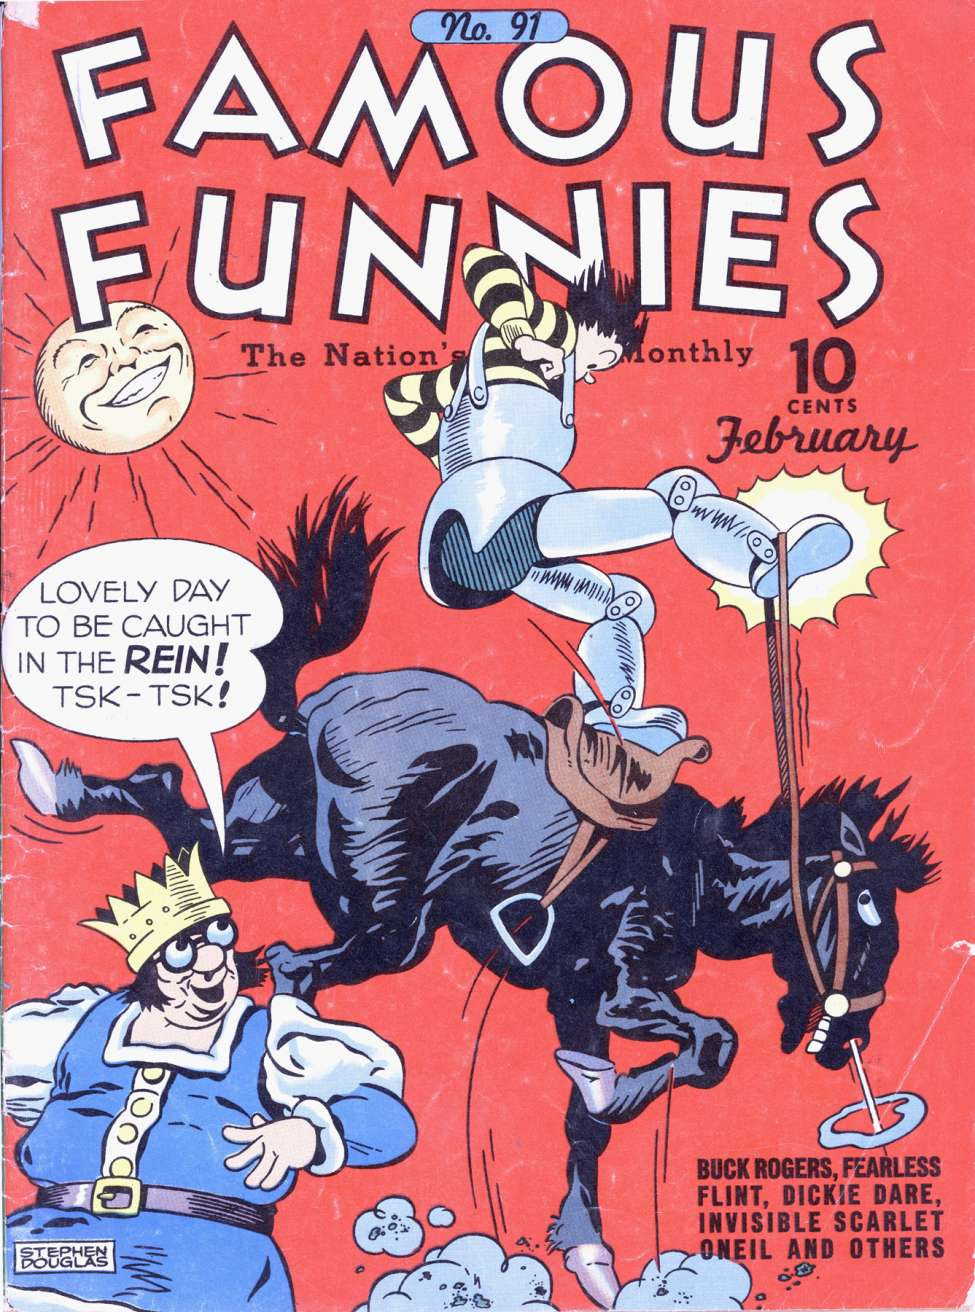 Comic Book Cover For Famous Funnies #91